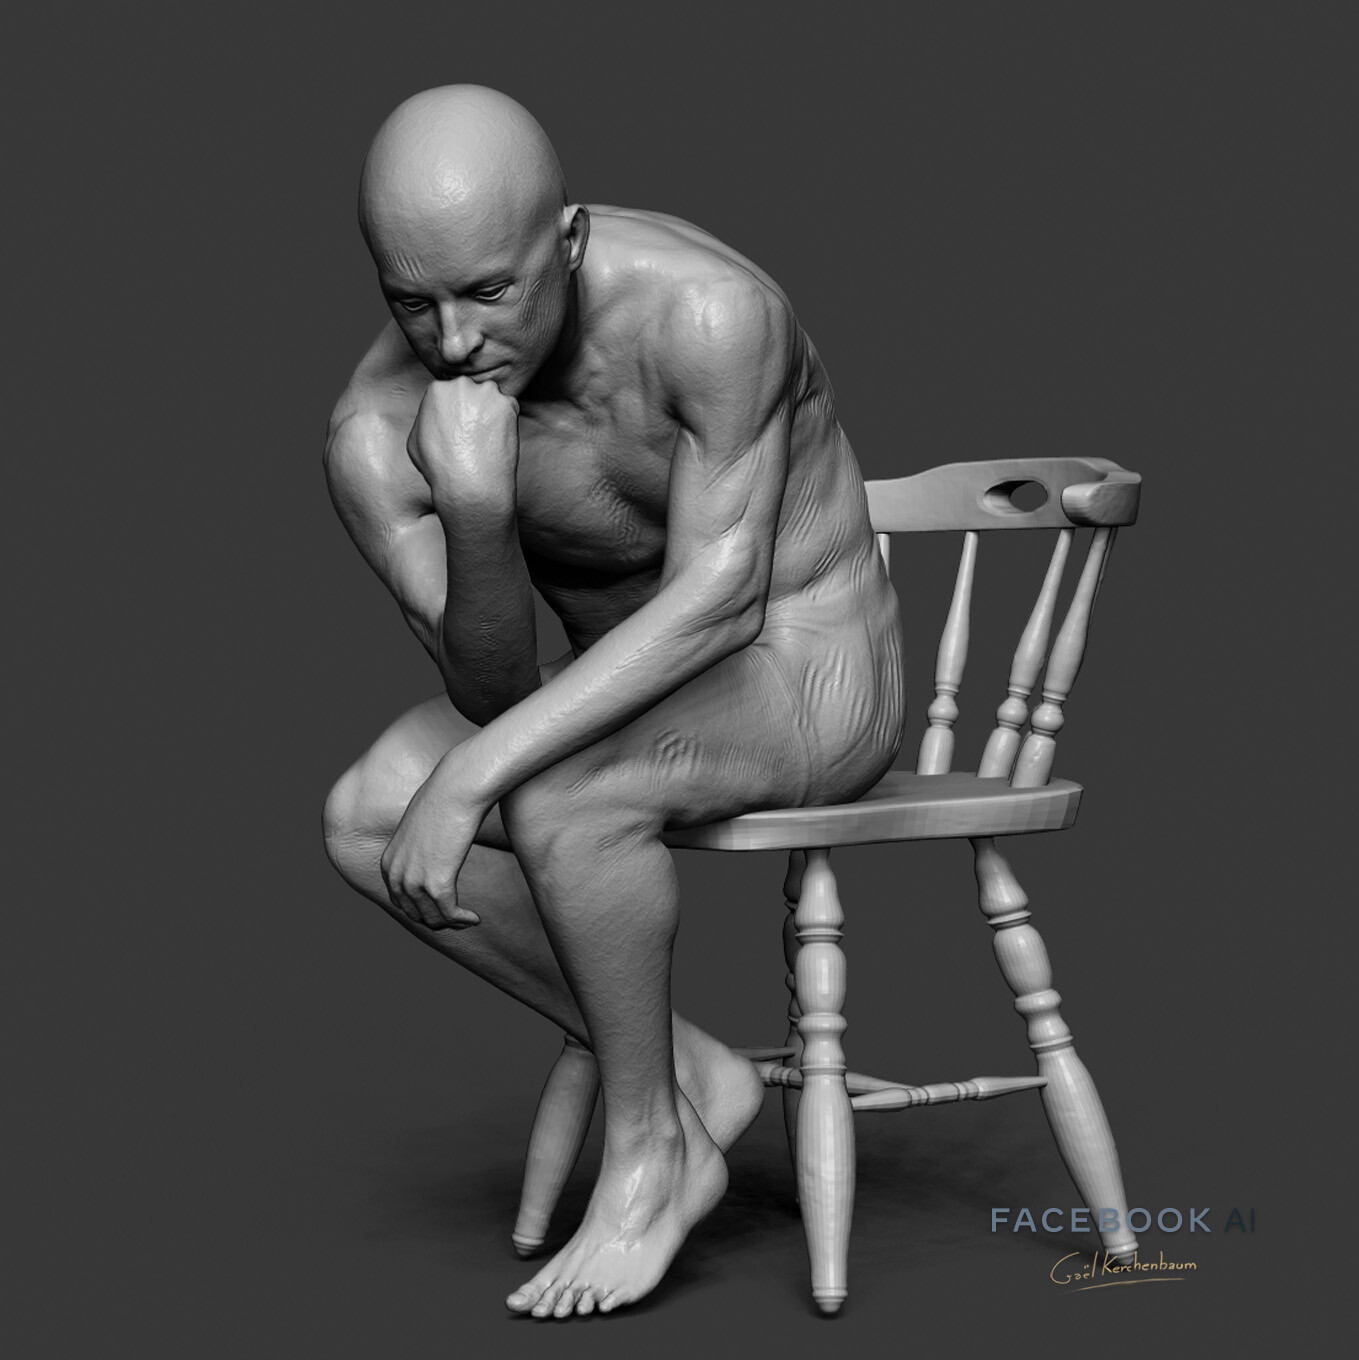 humain in pose and additional sculpt done for material